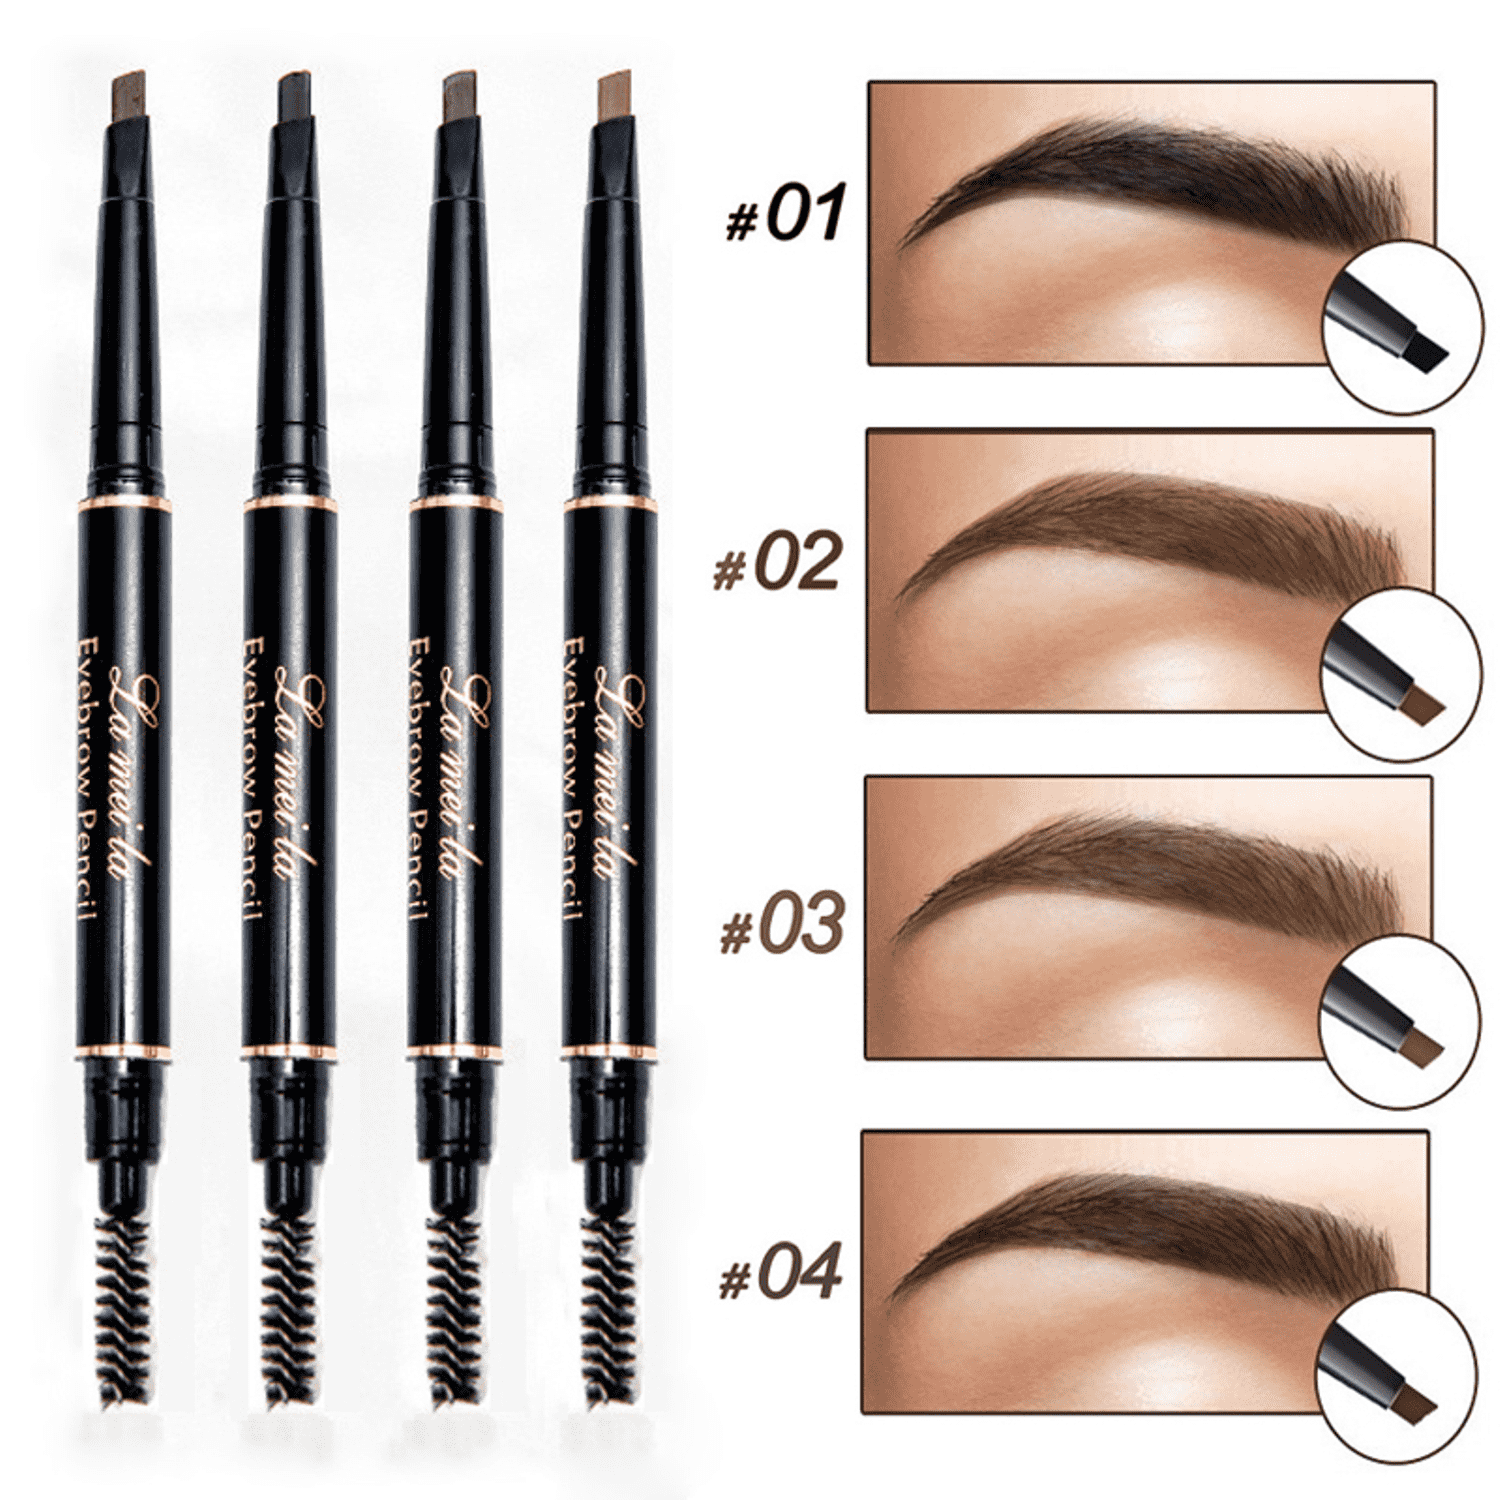 Everlasting Eyebrow Makeup Pencil Fandaly